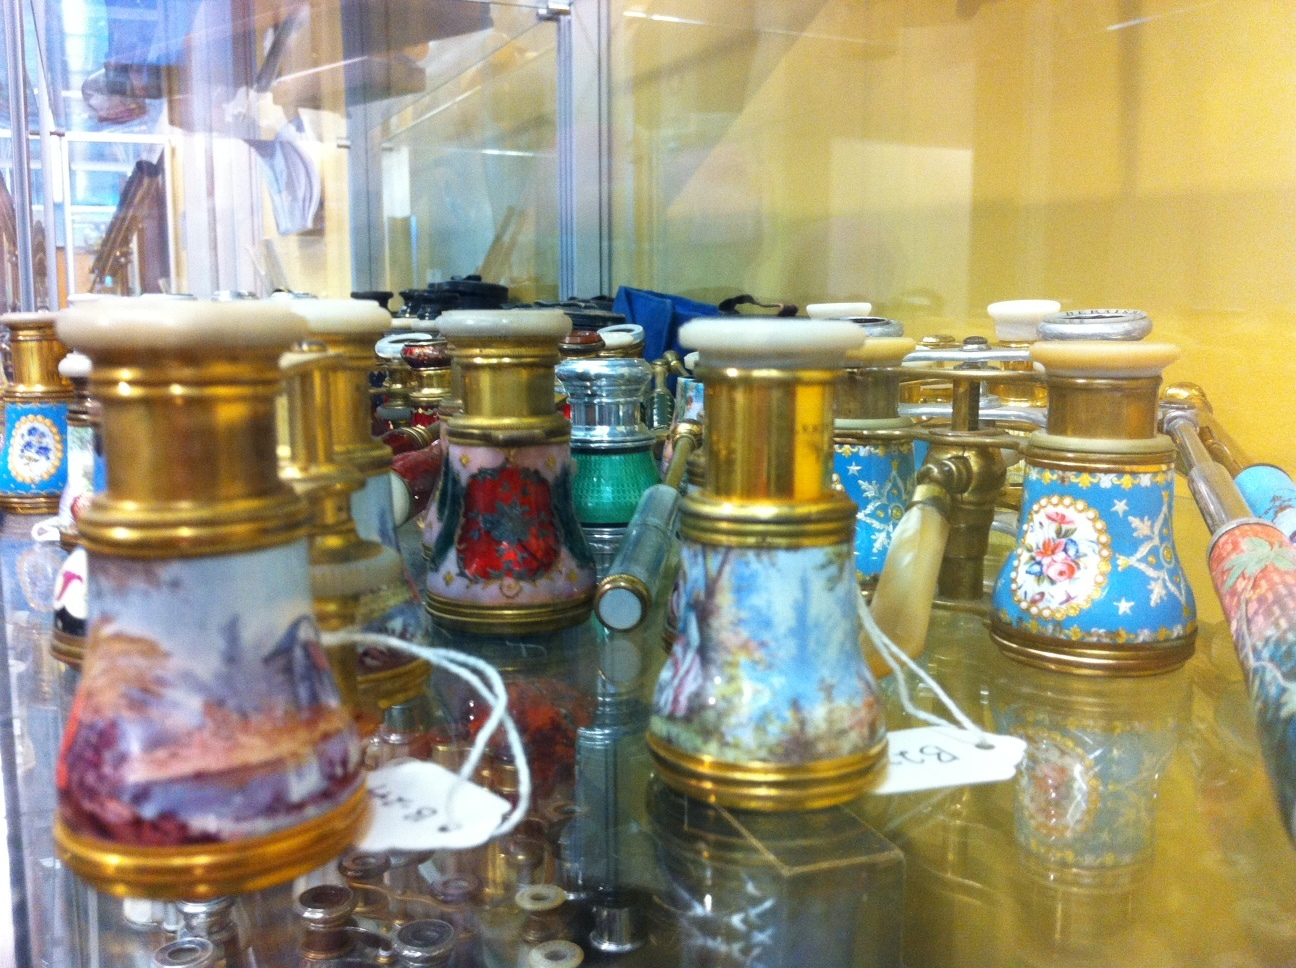 Who knew there were so many different opera glasses?